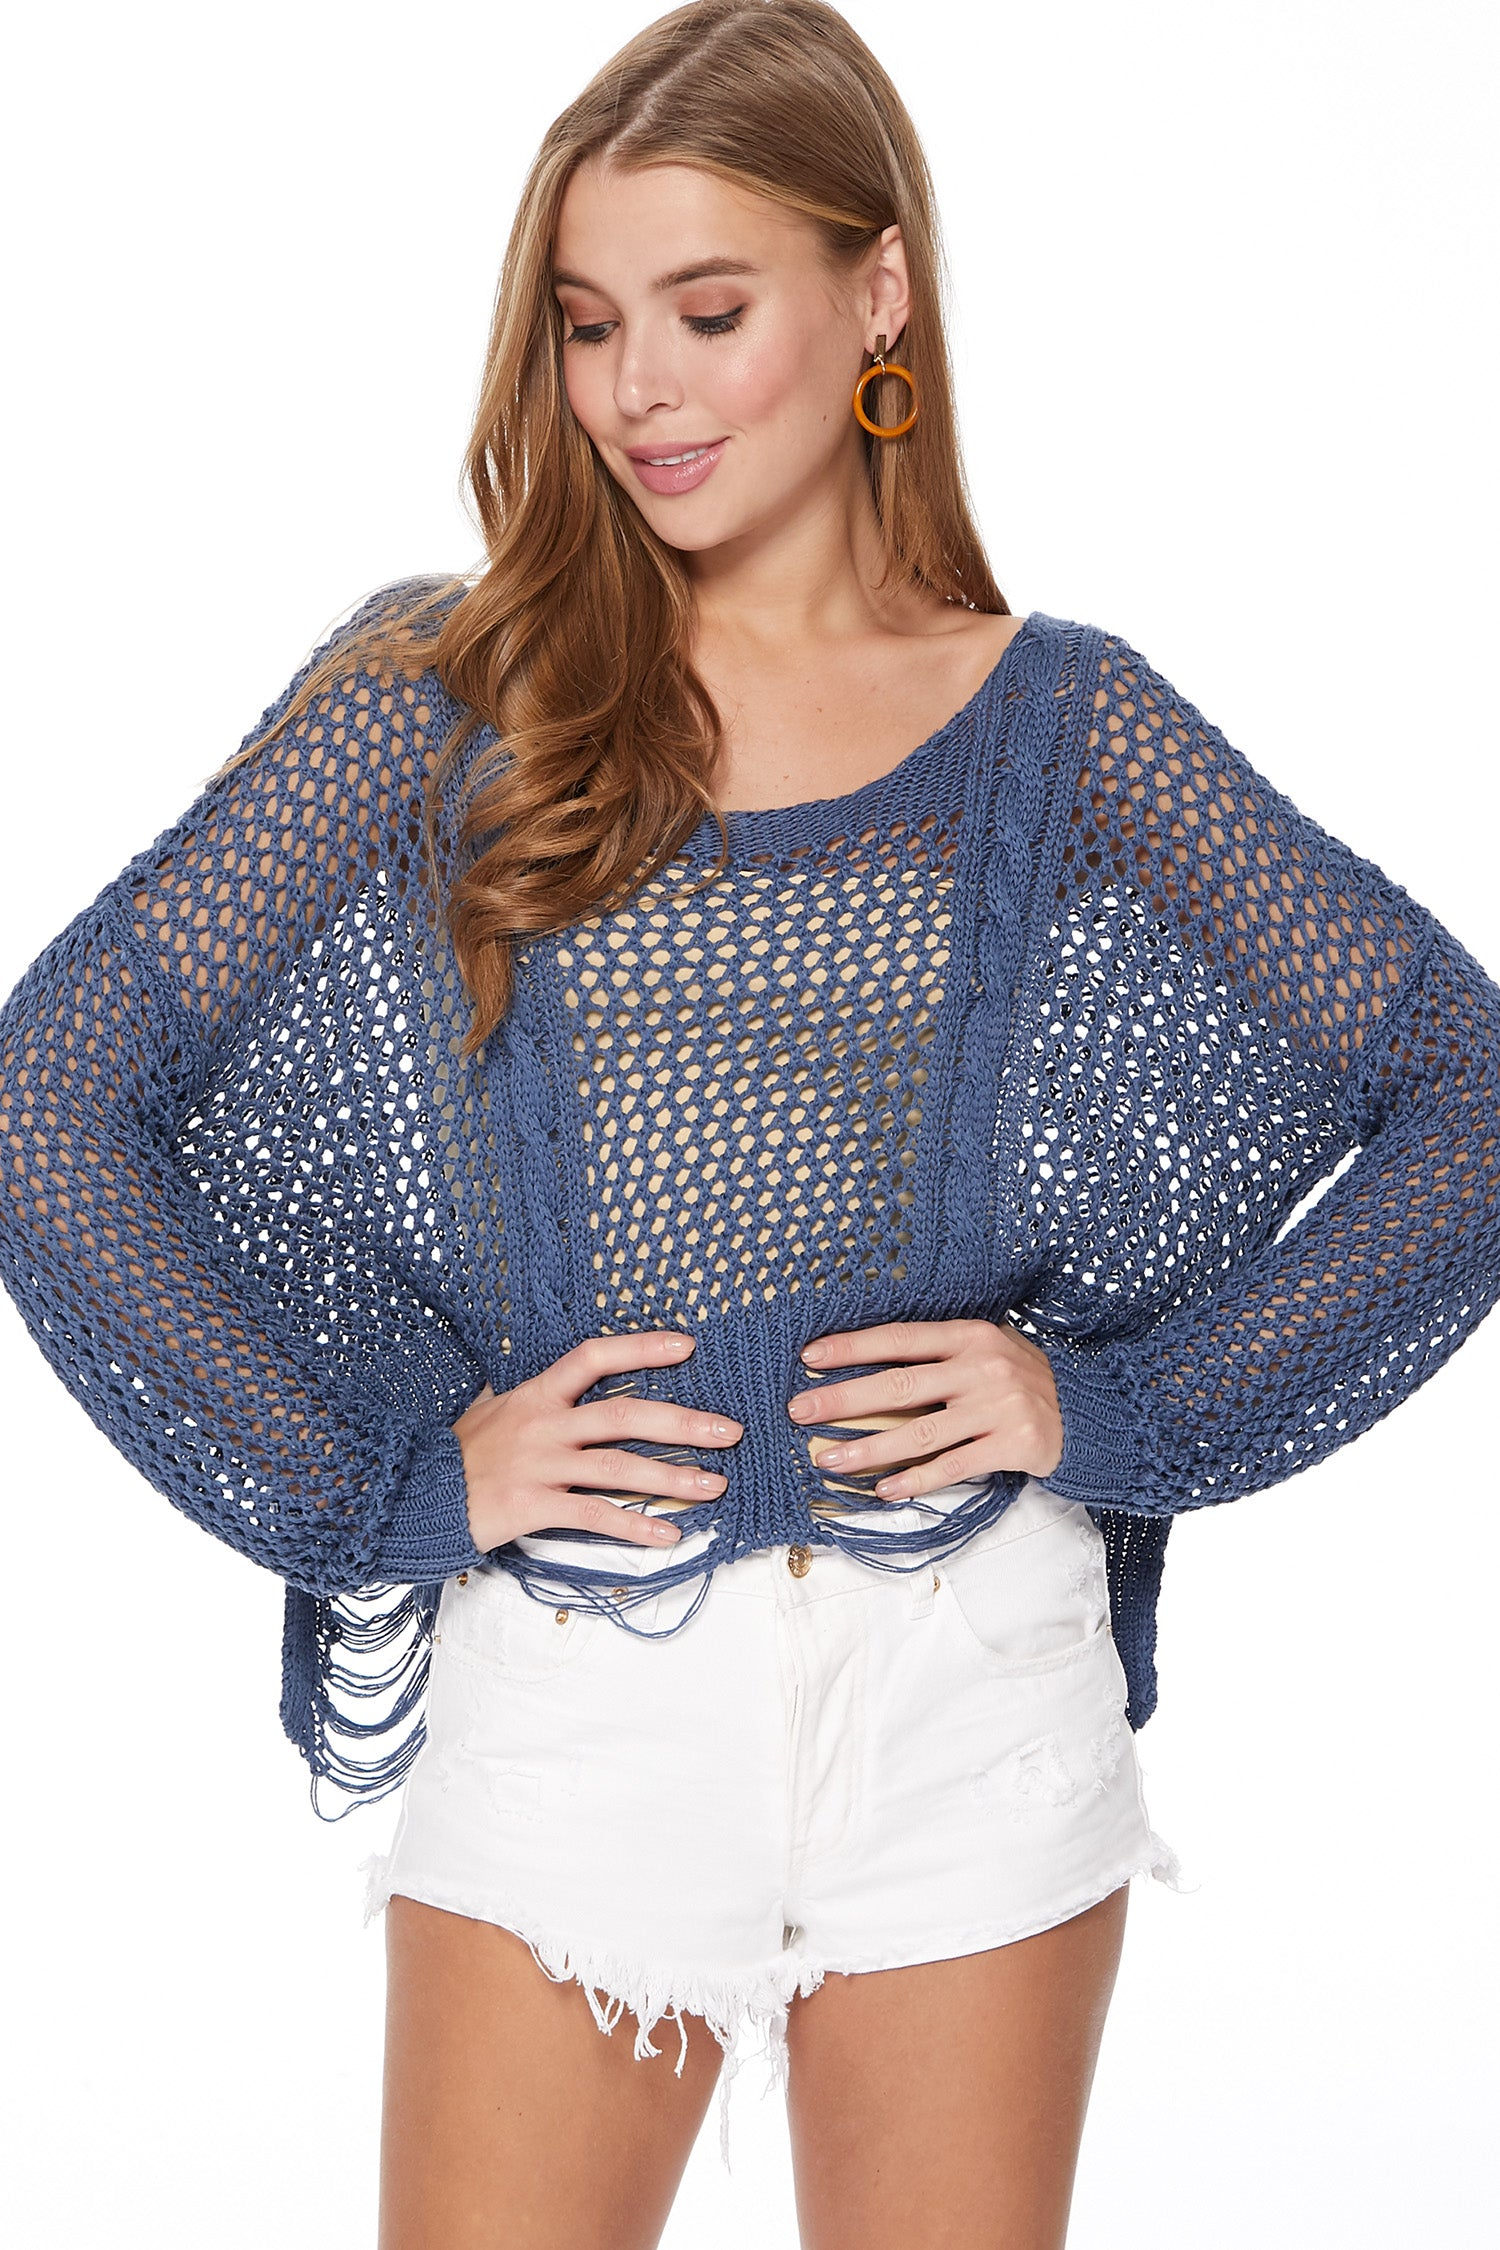 Heather Sweater in Navy